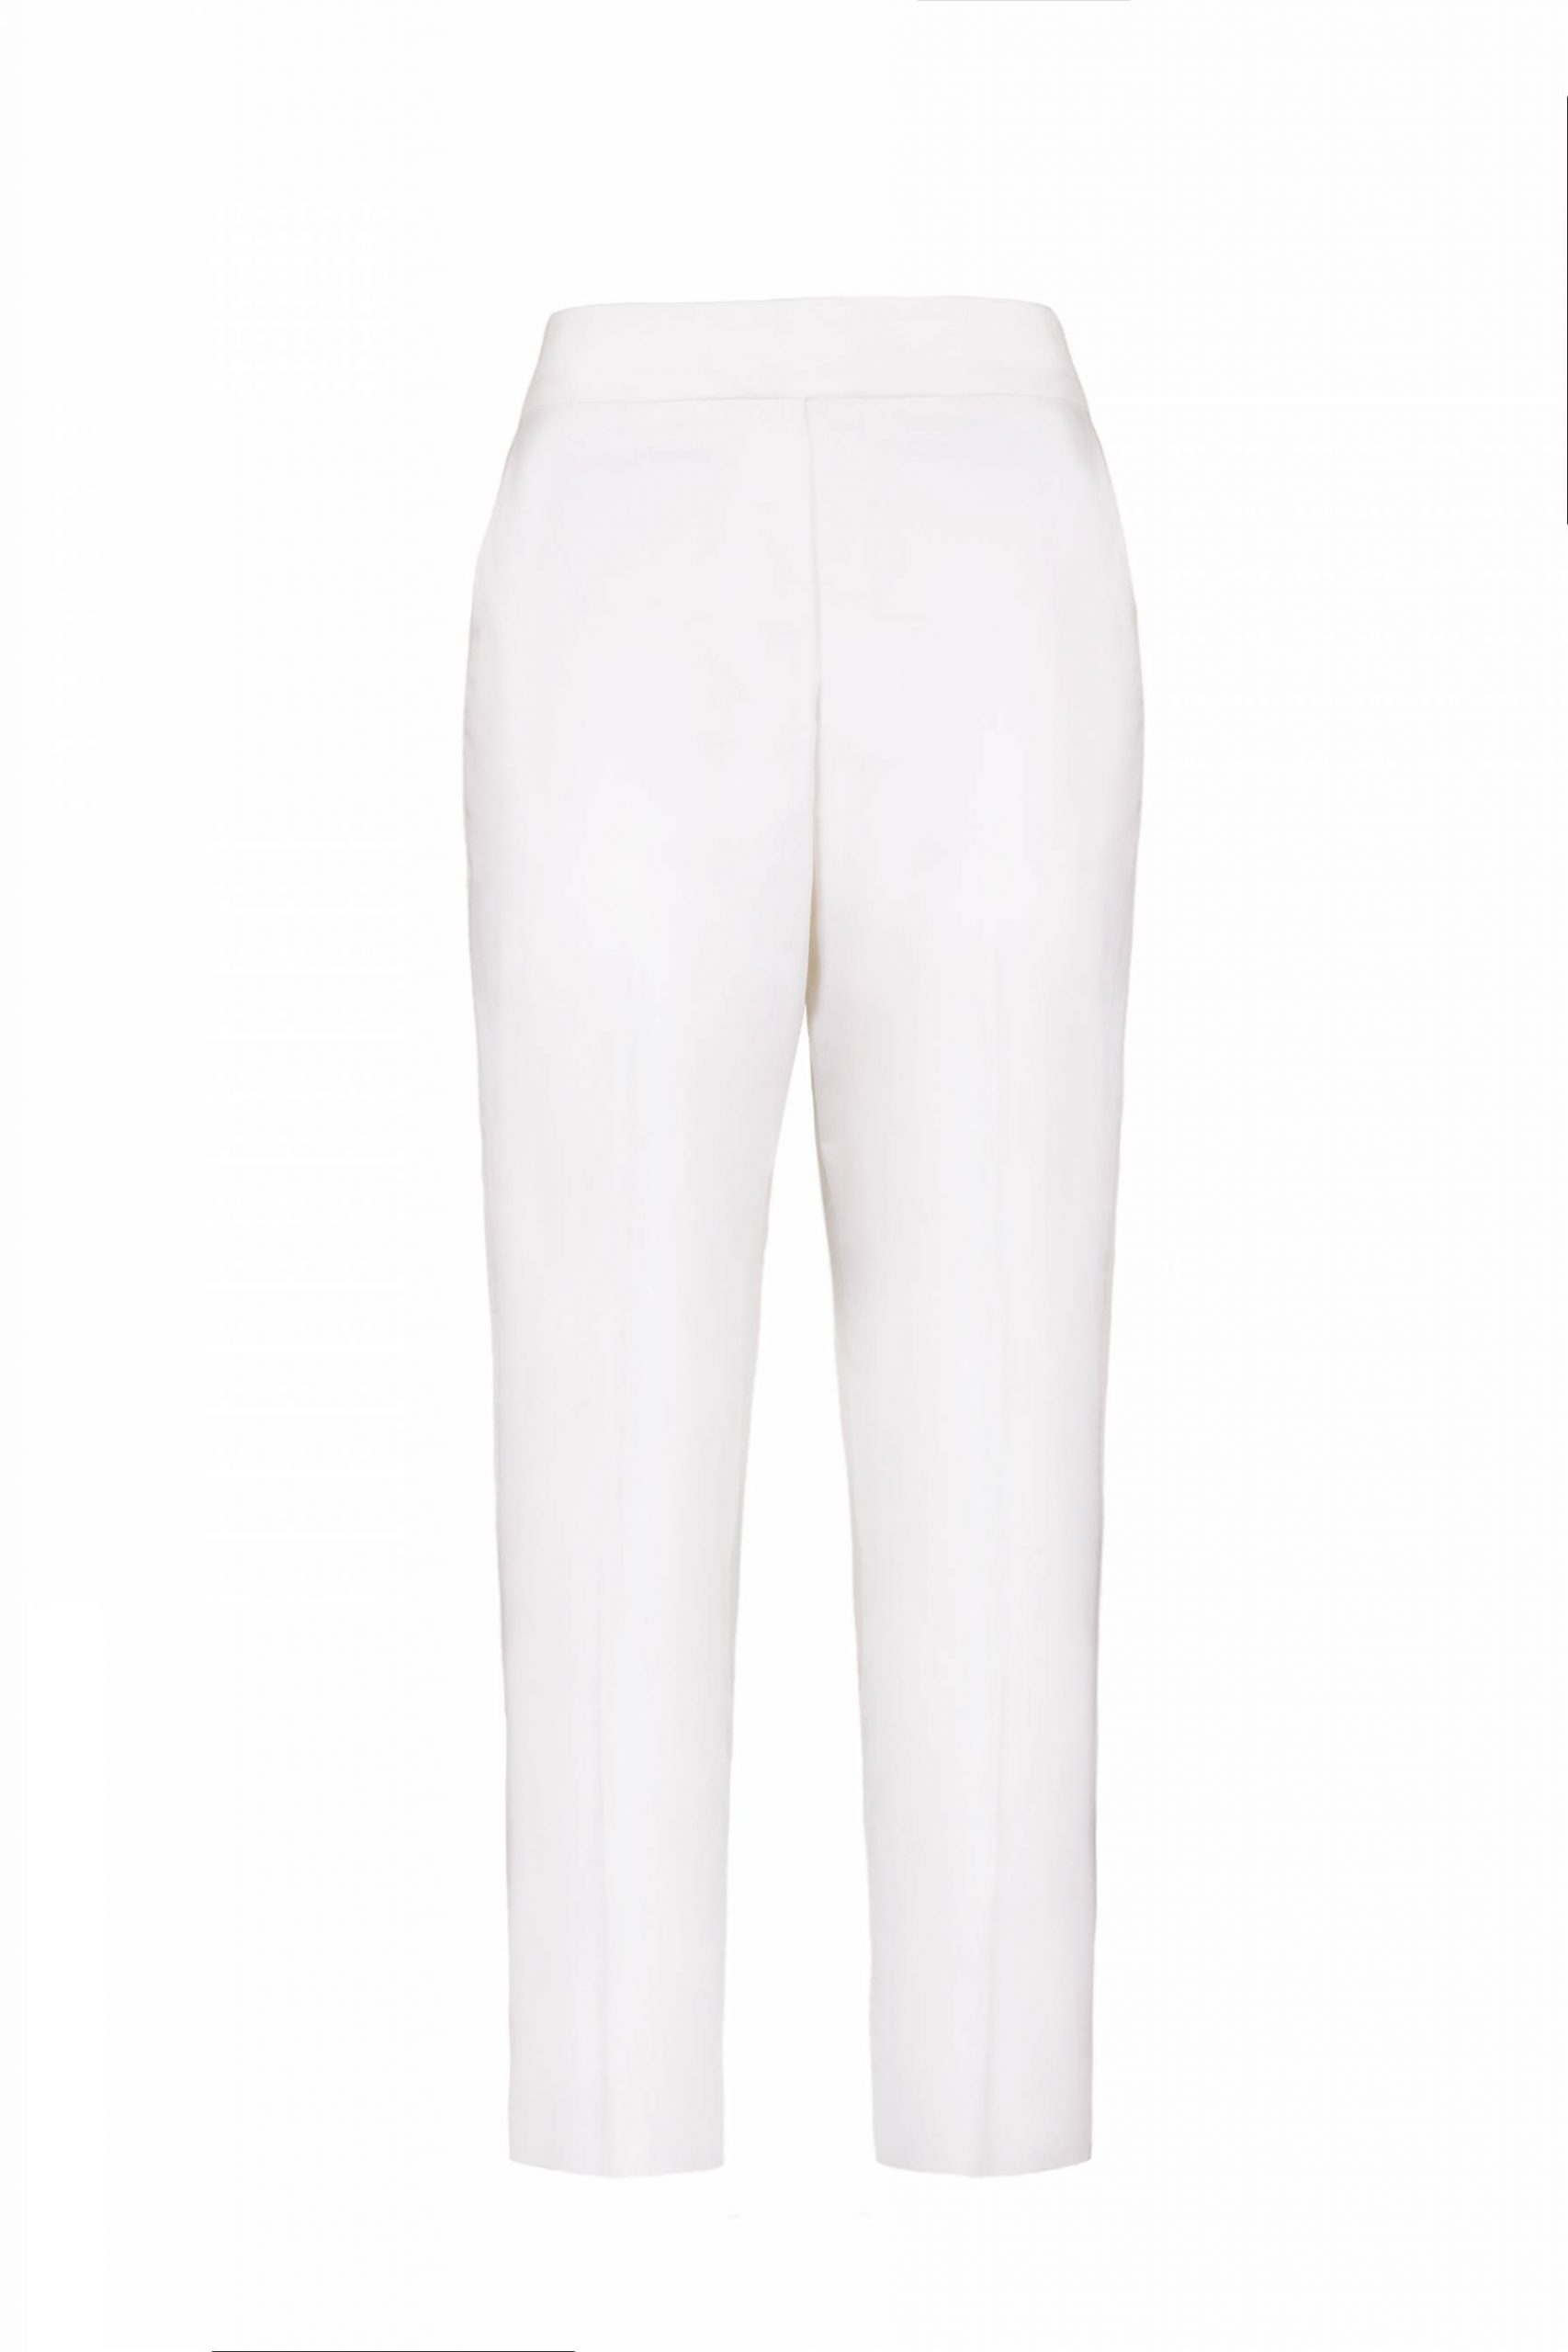 White cotton summer trousers2